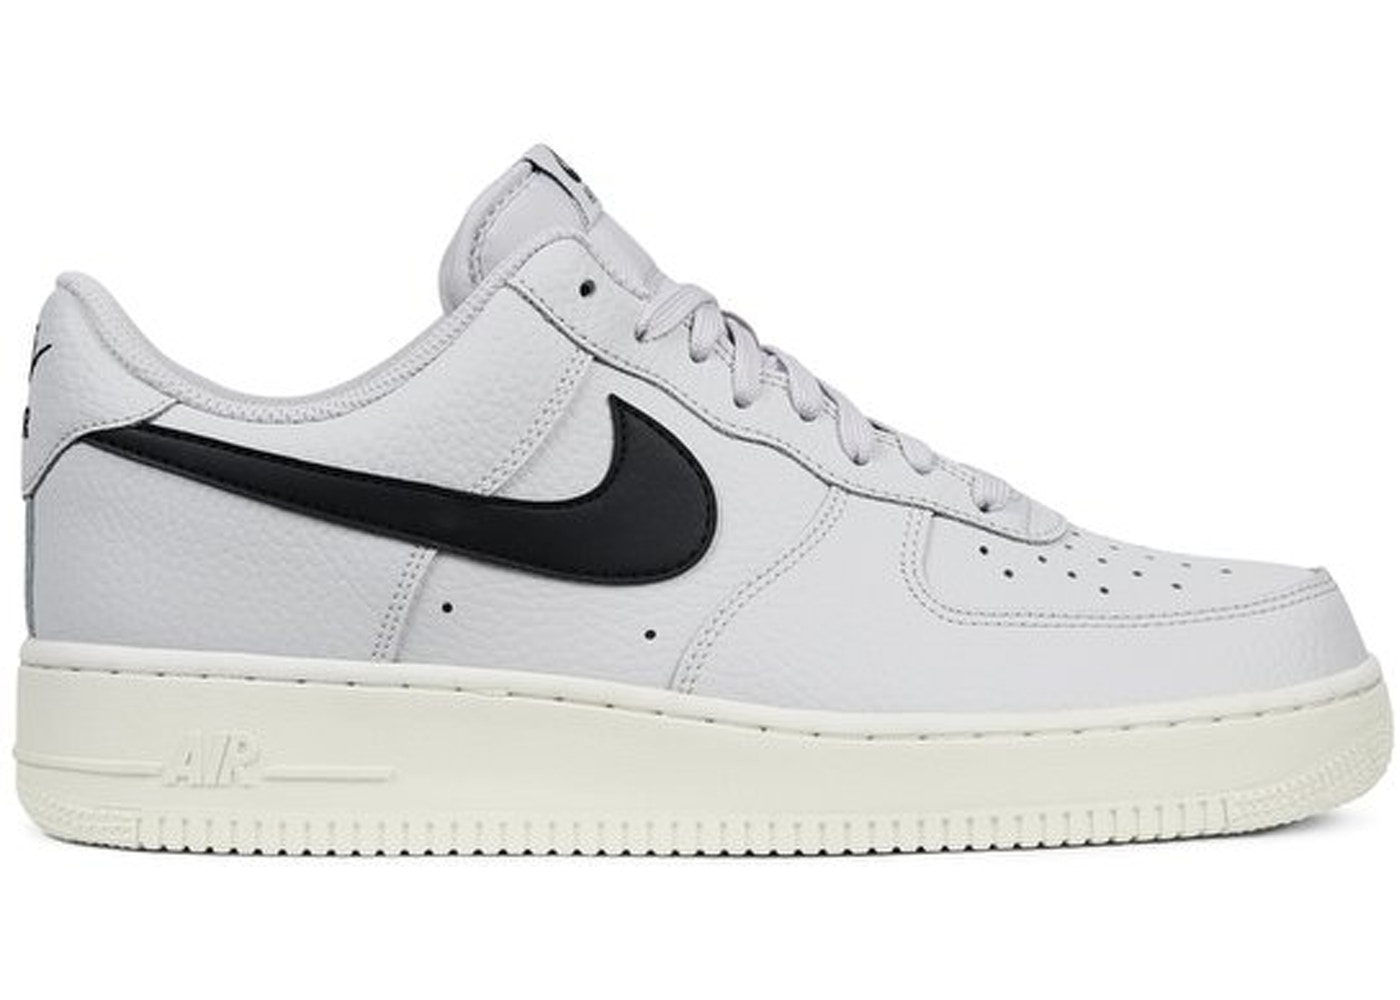 new style 769b8 9c3ed Sell. or Ask. Size  11.5. View All Bids. Air Force 1 Low Vast Grey Black